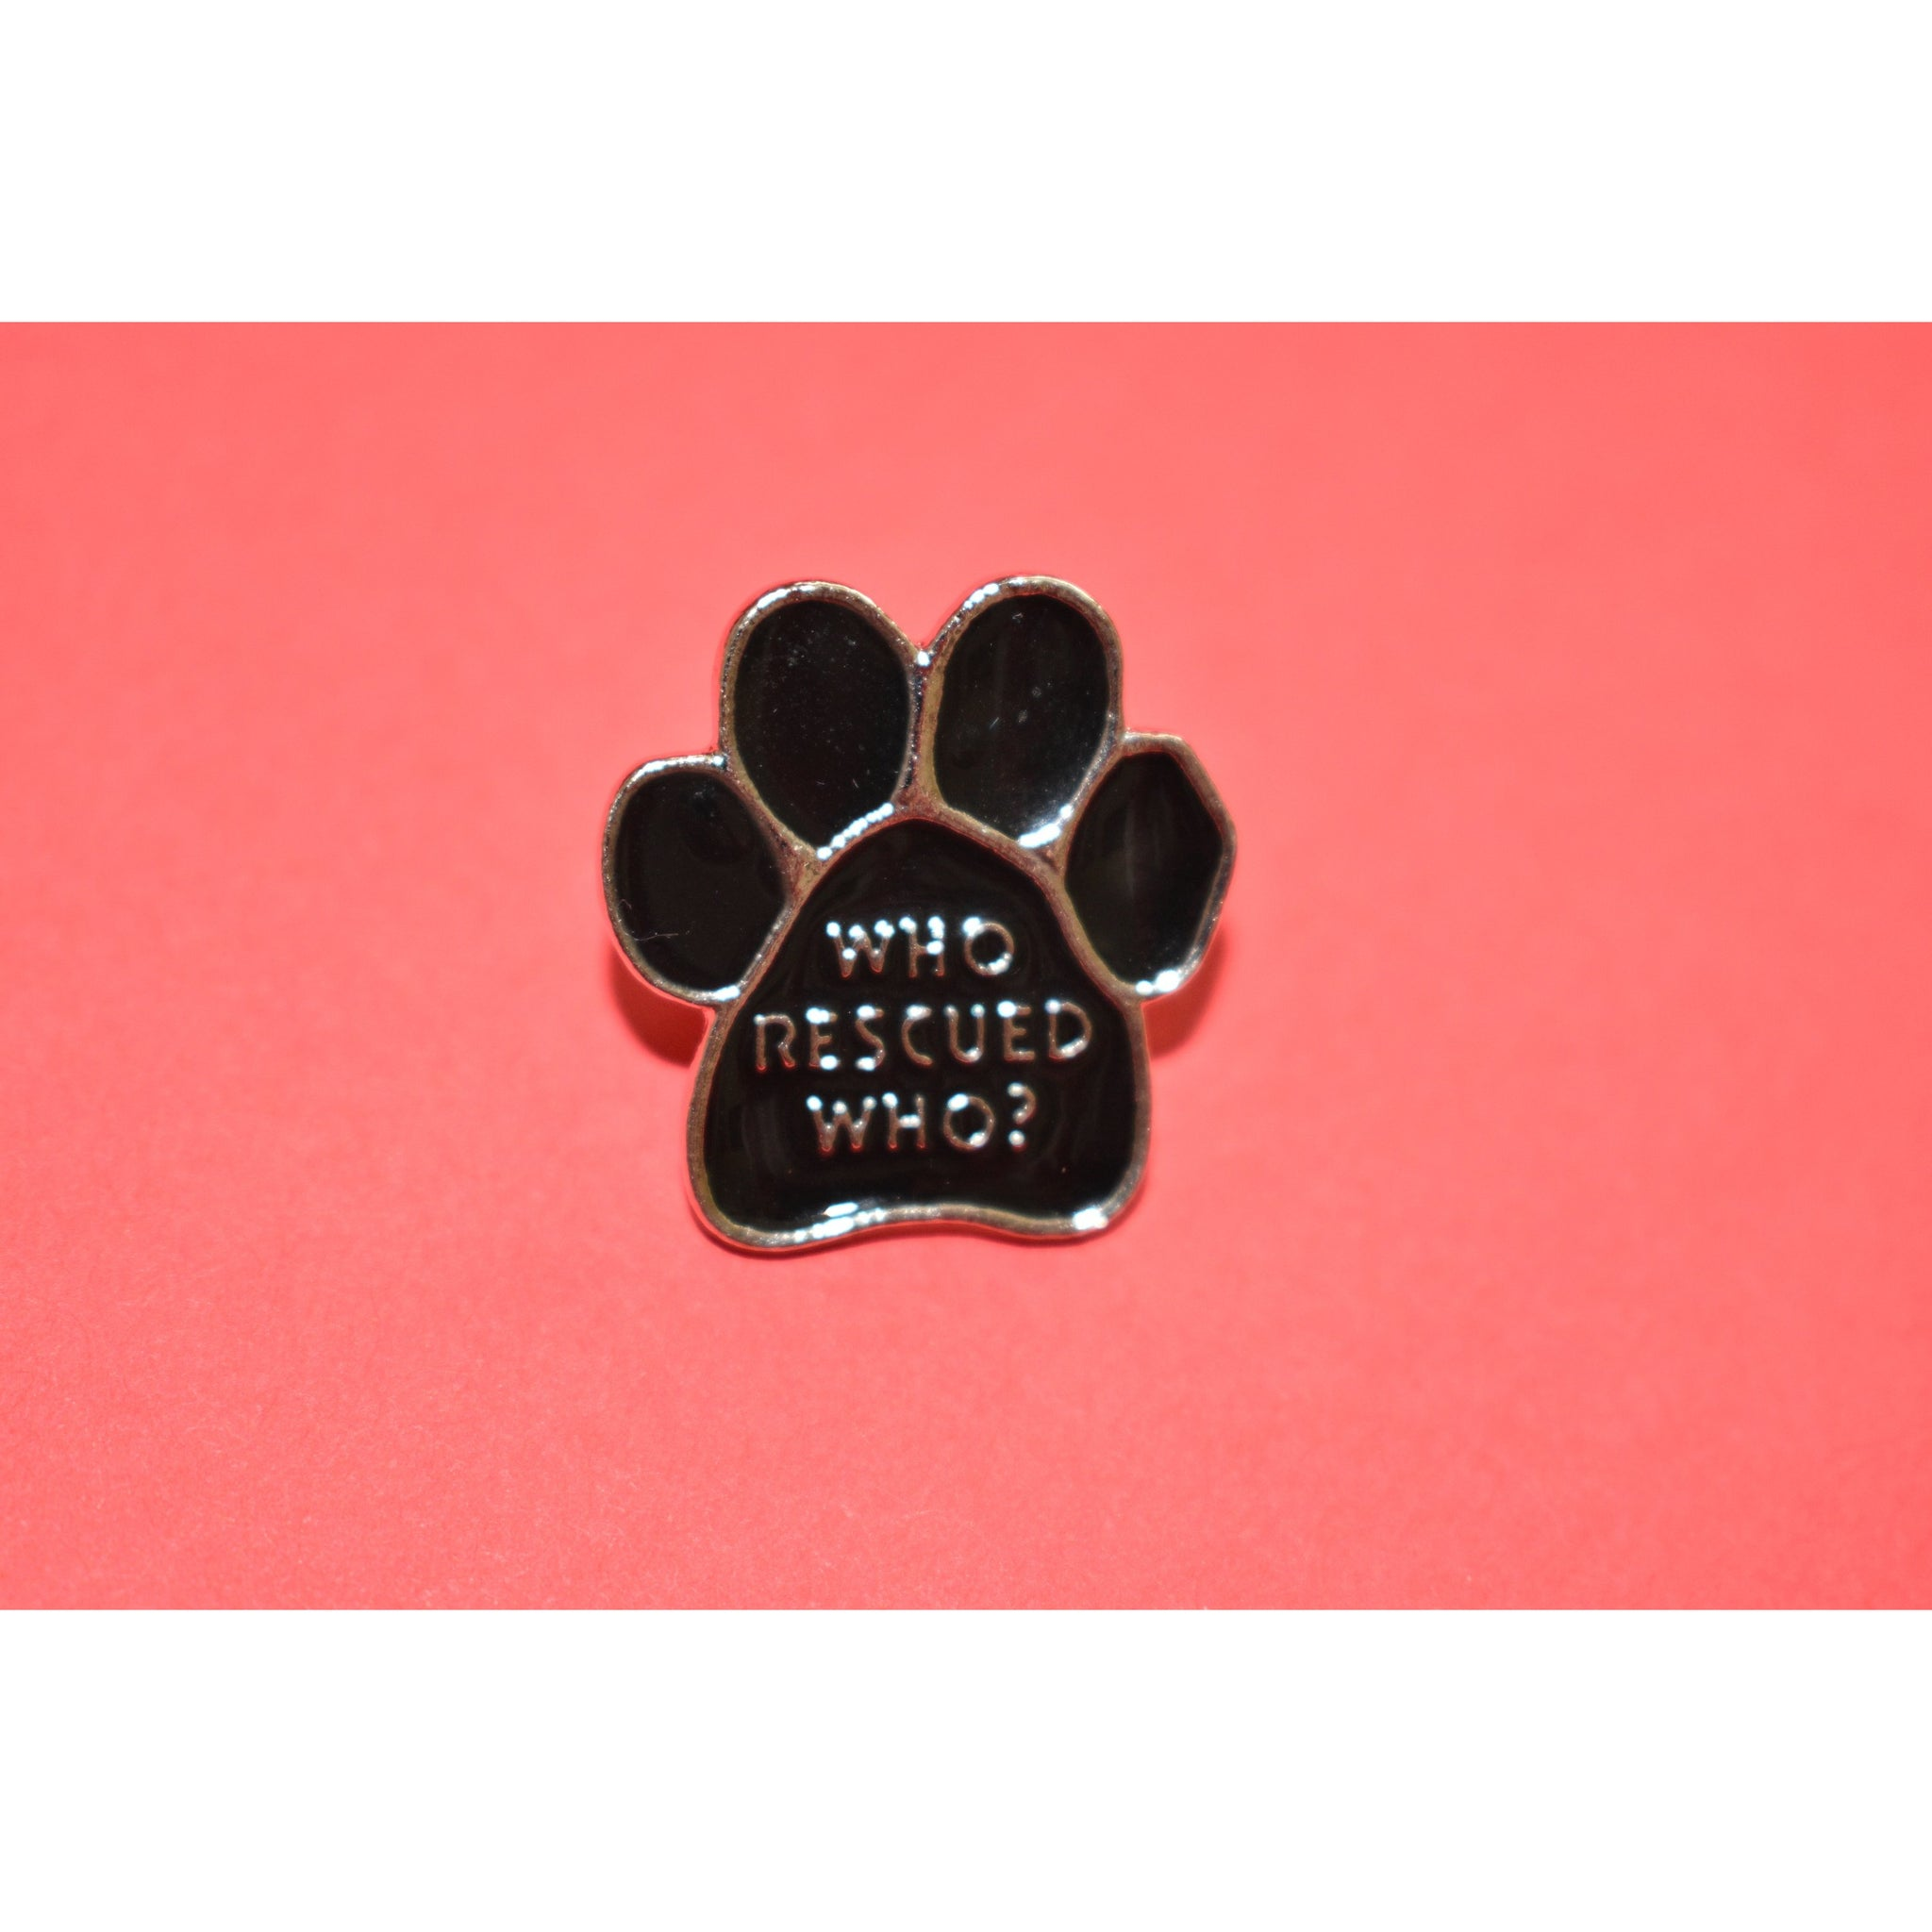 Who Rescued Who Enamel Pin - Dope Dog Co